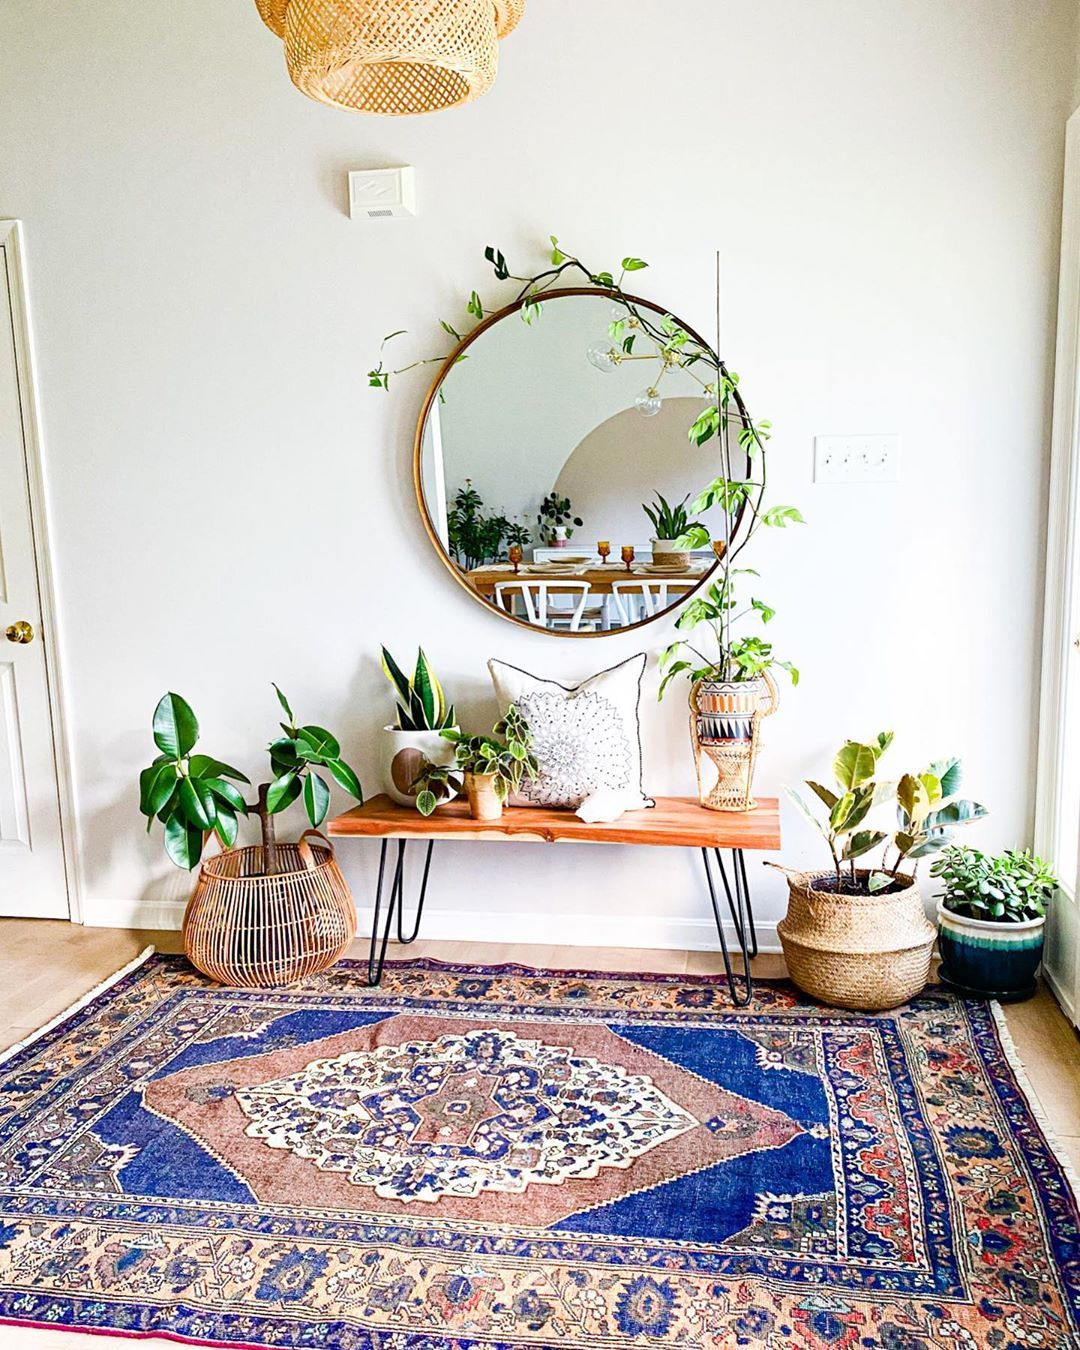 double tap if you're getting rug envy just seeing this view, too! •⁠ •⁣⁣⁠⁠ 📷 @vintagethreadsco •⁣⁣⁠ •⁠ #thenewbohemians #boldbohemians #vintagerug #eclecticdecor #interiorrewilding #bohemiandecor #homesohard #showmeyourboho #eclectichome #mybohoabode #interior_delux #spotlightonmyhome #currenthomeview #interiorboom #entryway #myeclecticmix #myeclectichome #plantsmakemehappy #designsponge #howyouhome #bohohomedecor #interiorstyled #nesttoimpress #dailydecordetail